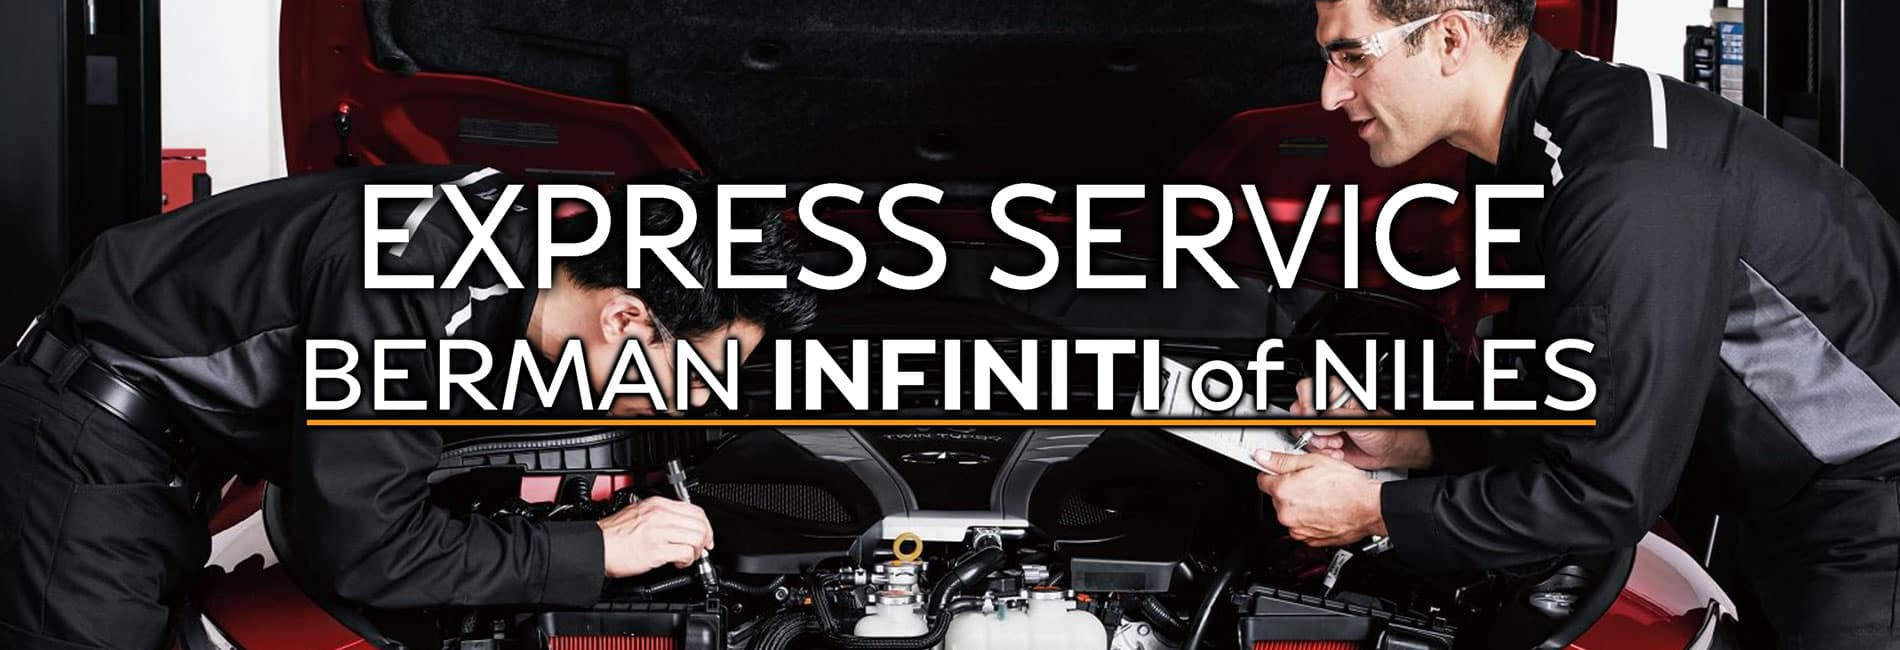 Express Service at Berman INFINITI of Niles